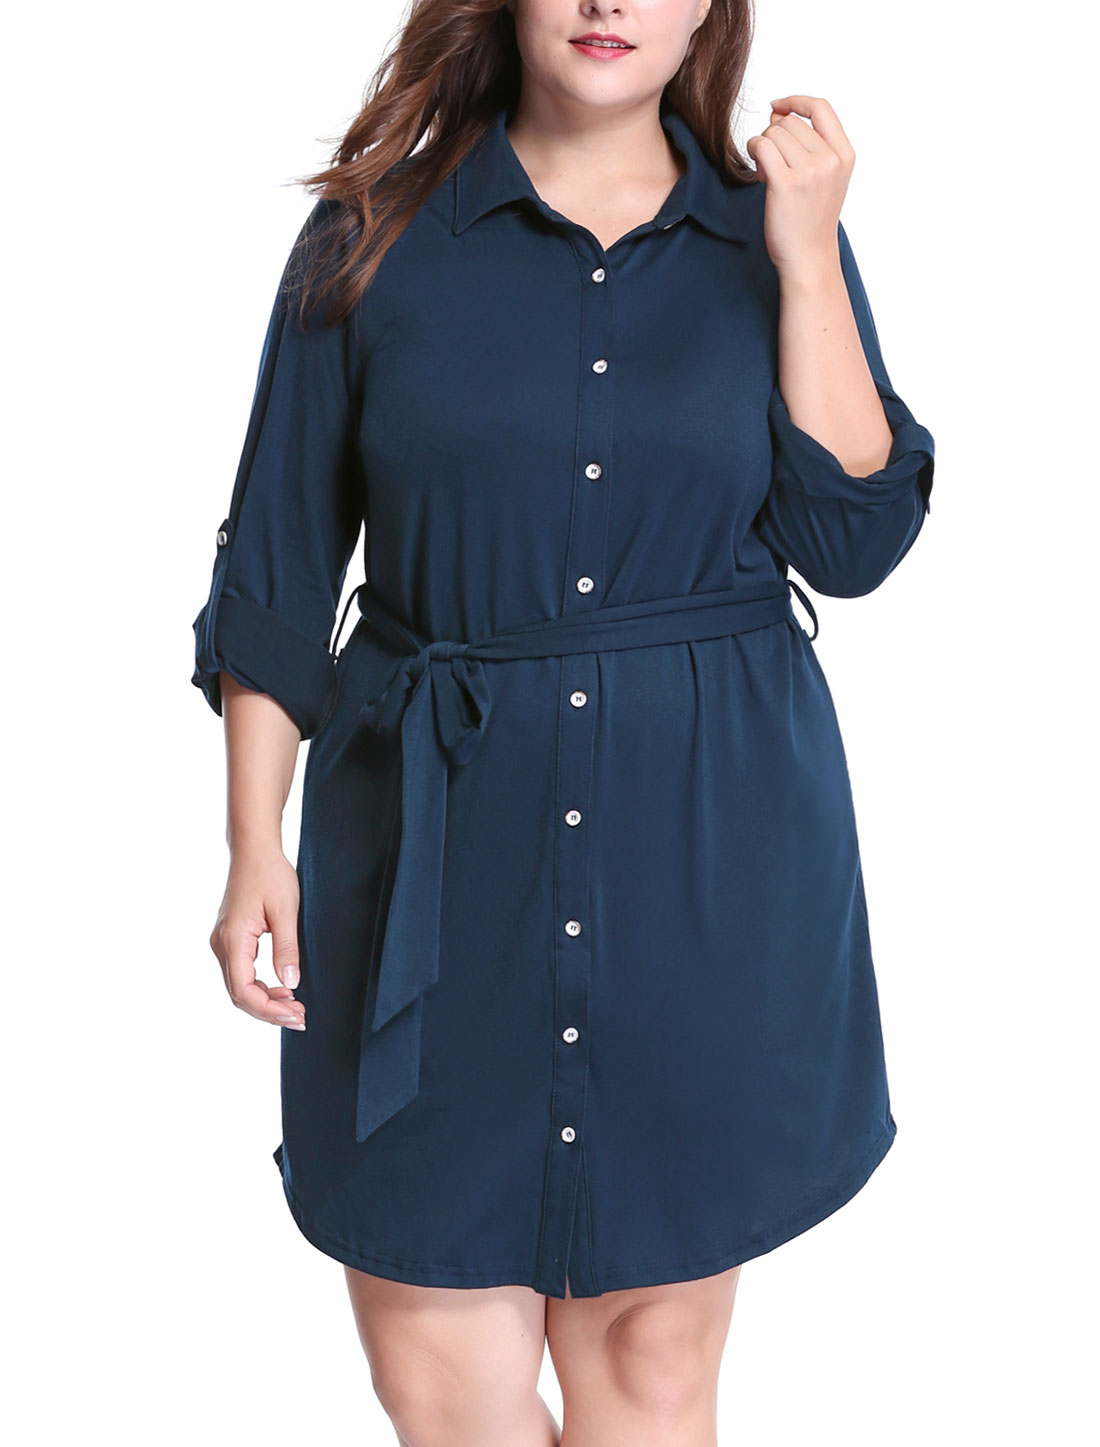 Women Plus Size Roll Up Sleeves Above Knee Belted Shirt Dress Blue 3X